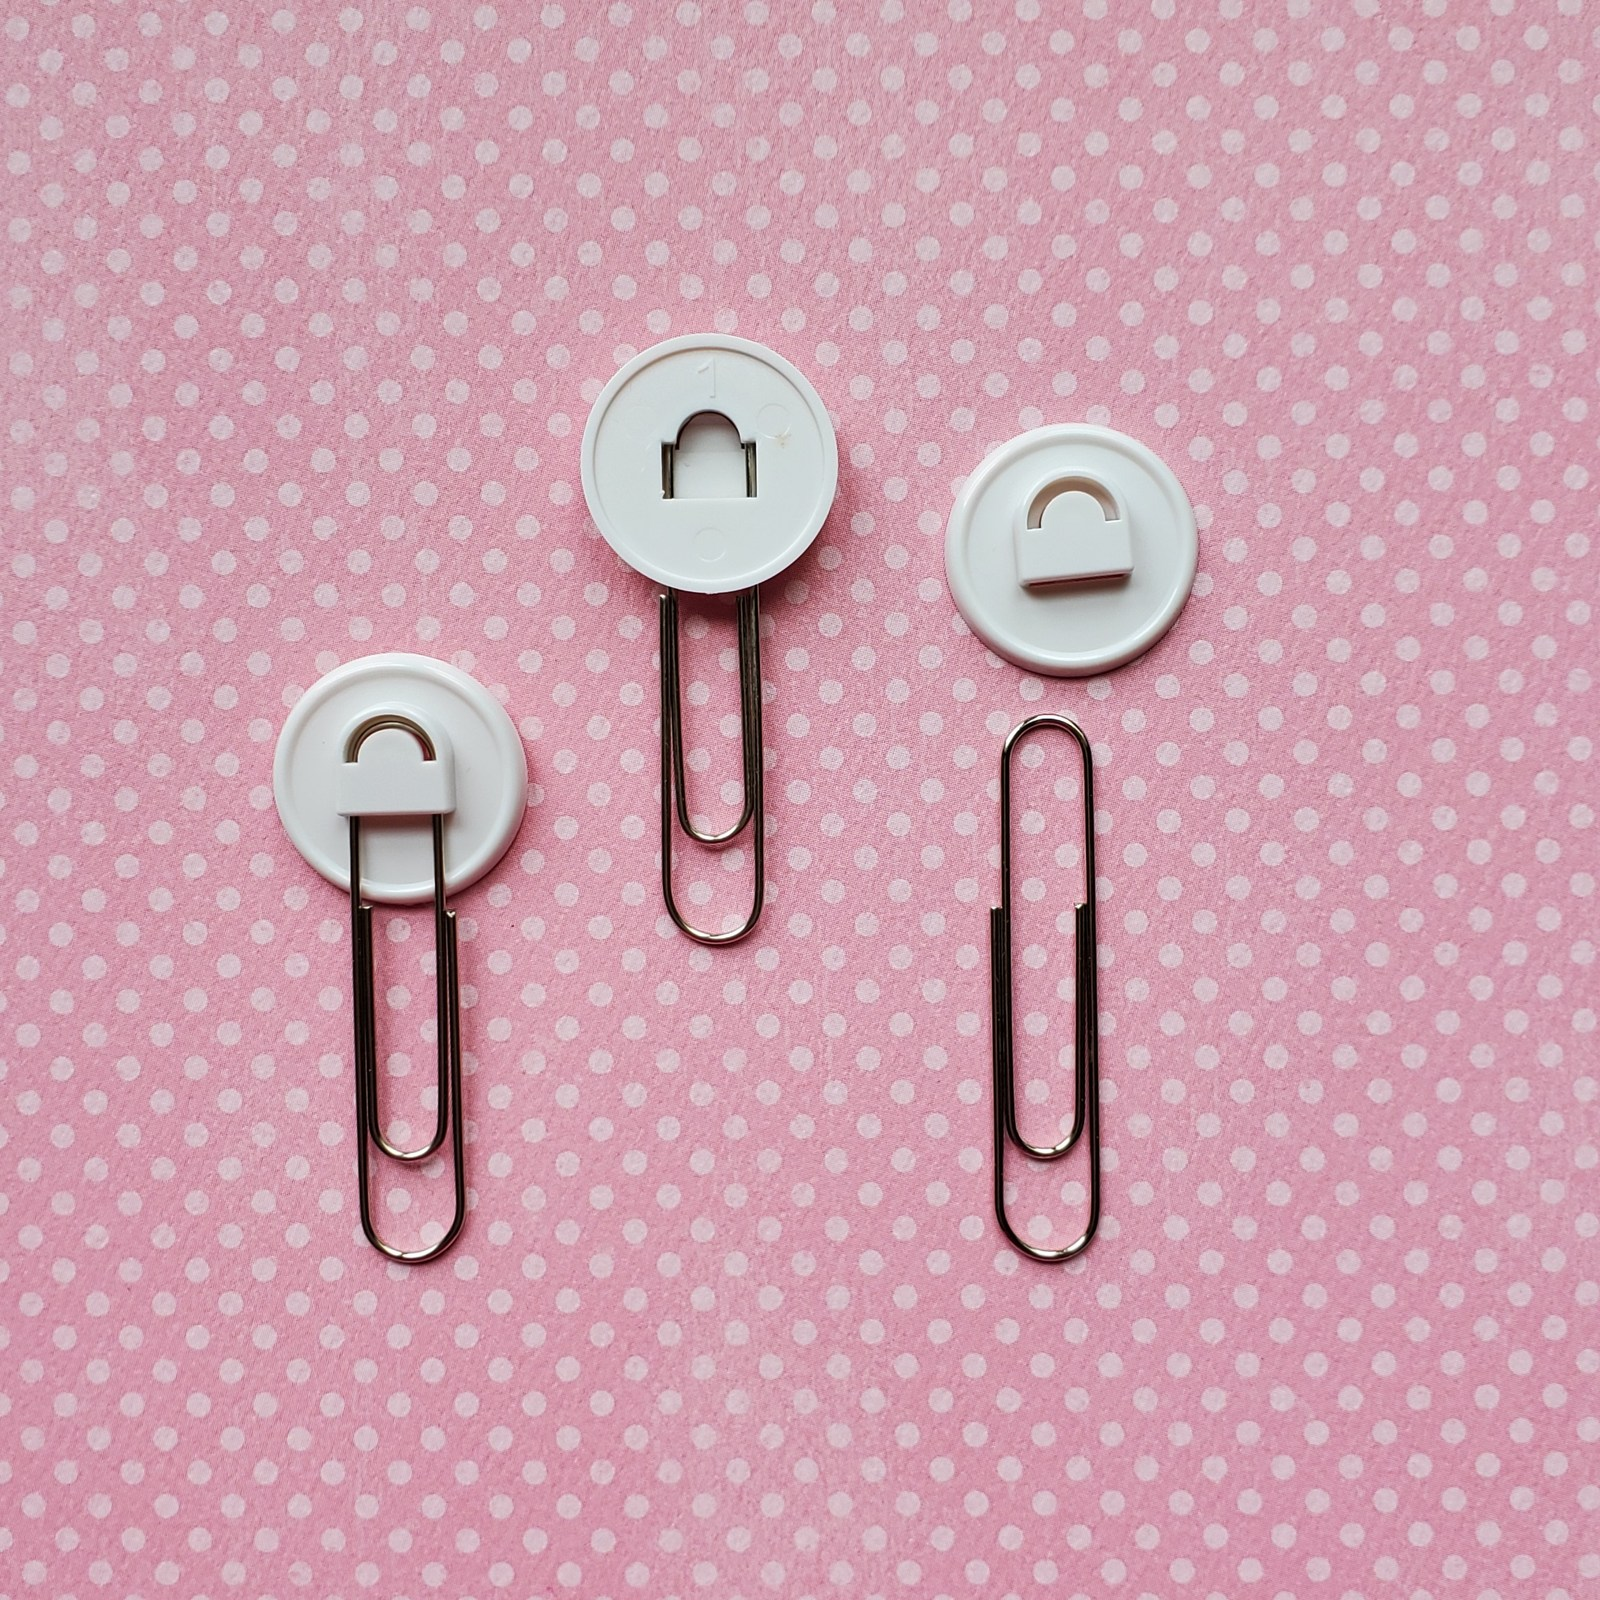 Paper Clip Blanks:  Set of 25 Paper Clips and 25 Blank Backs